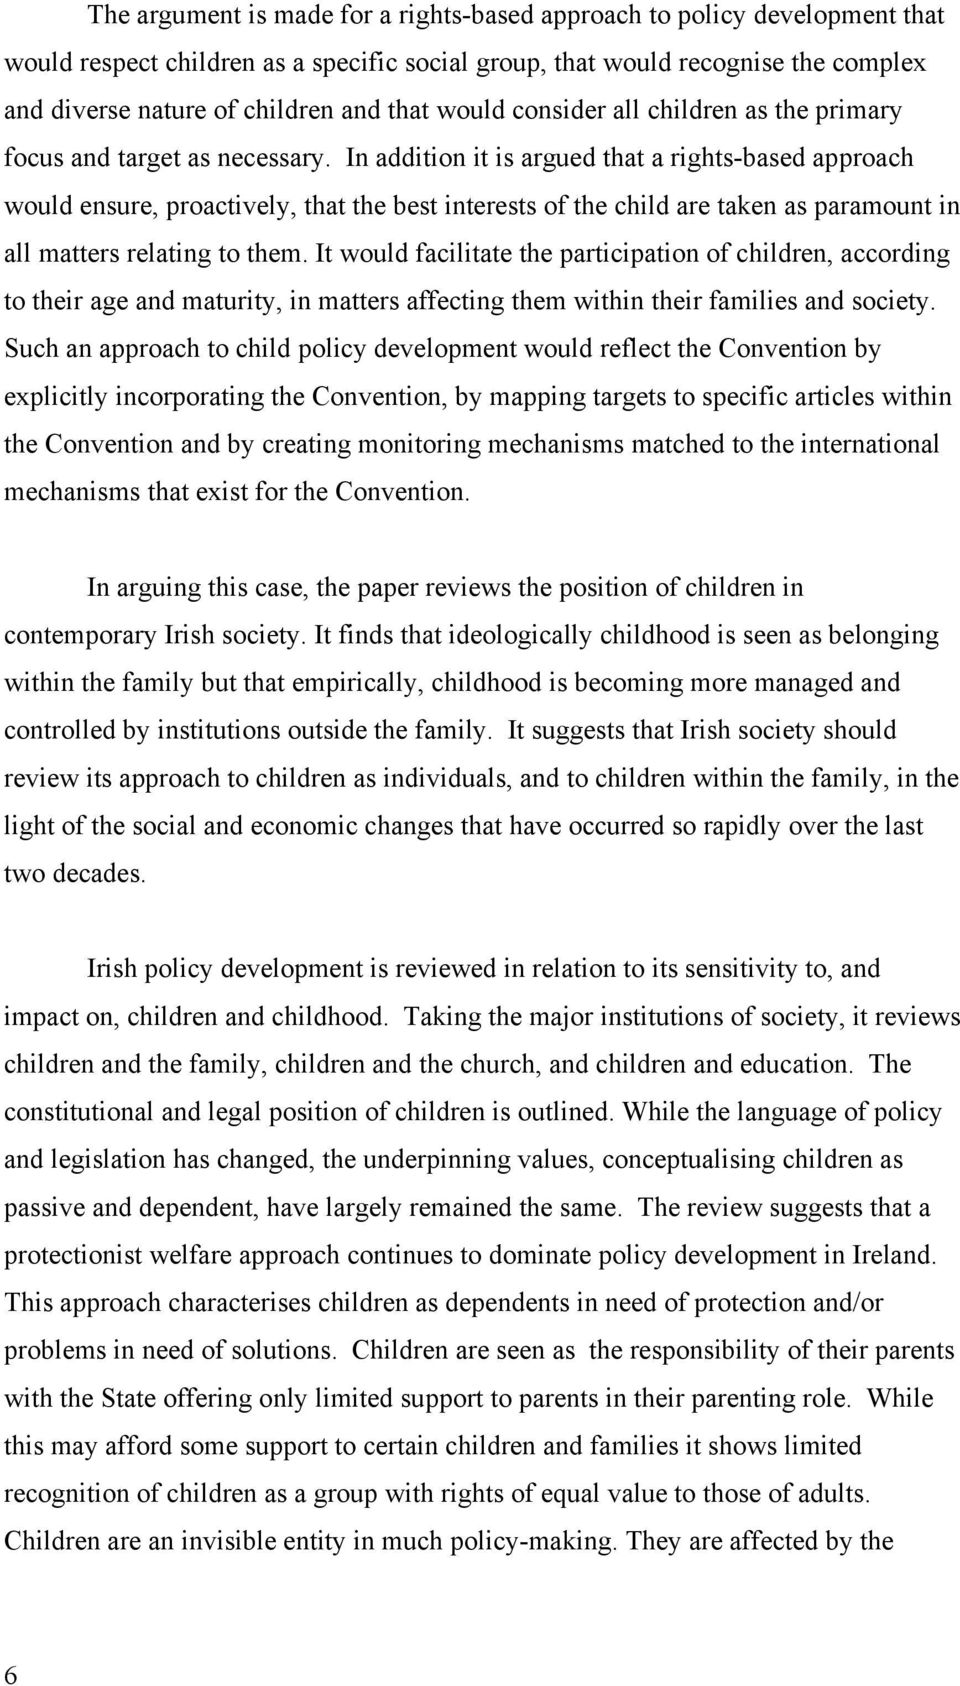 In addition it is argued that a rights-based approach would ensure, proactively, that the best interests of the child are taken as paramount in all matters relating to them.